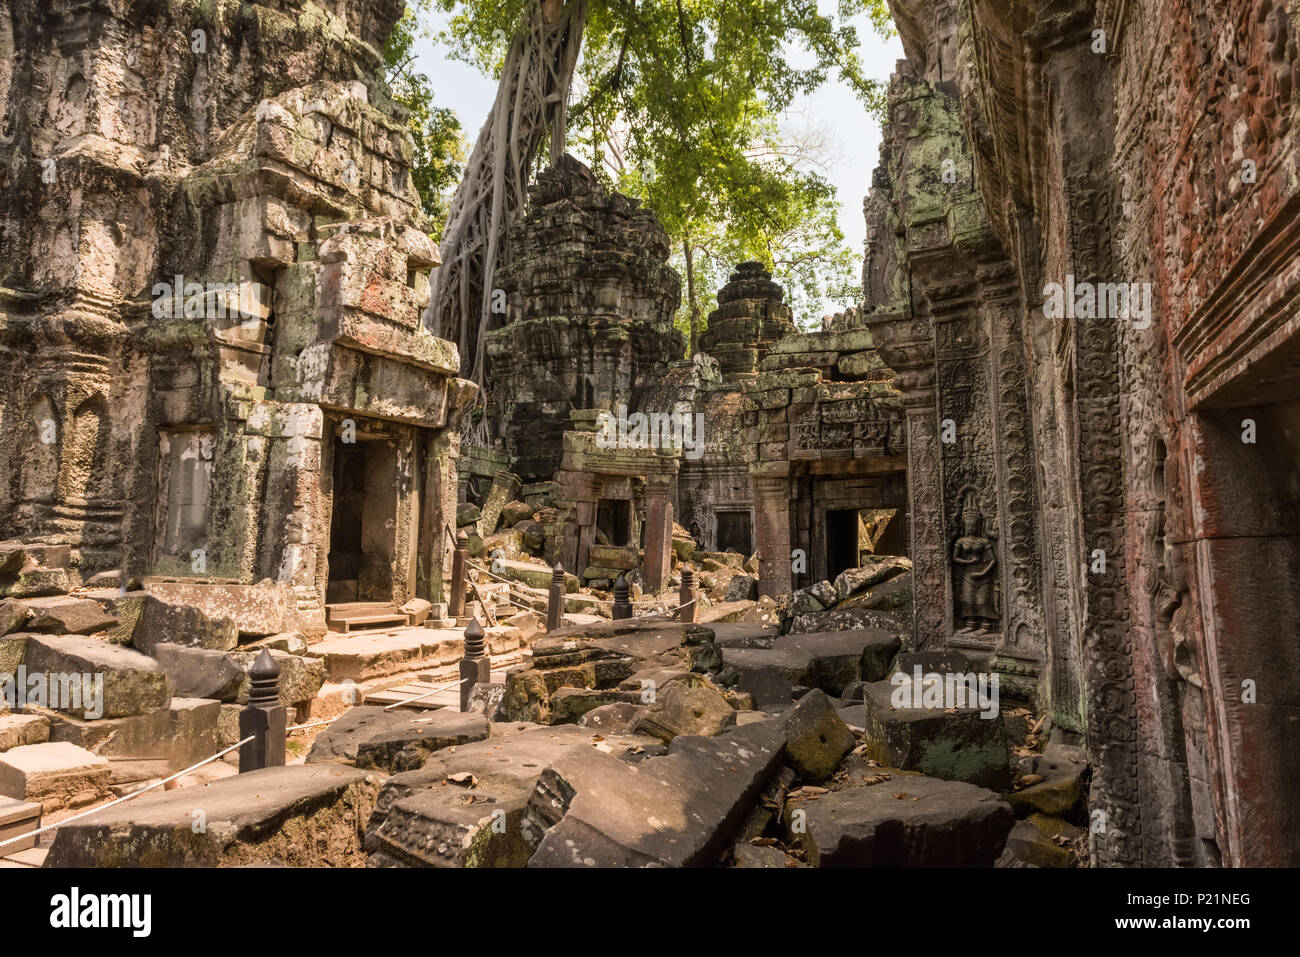 Giant tree and roots in temple Ta Prom Angkor wat - Stock Image